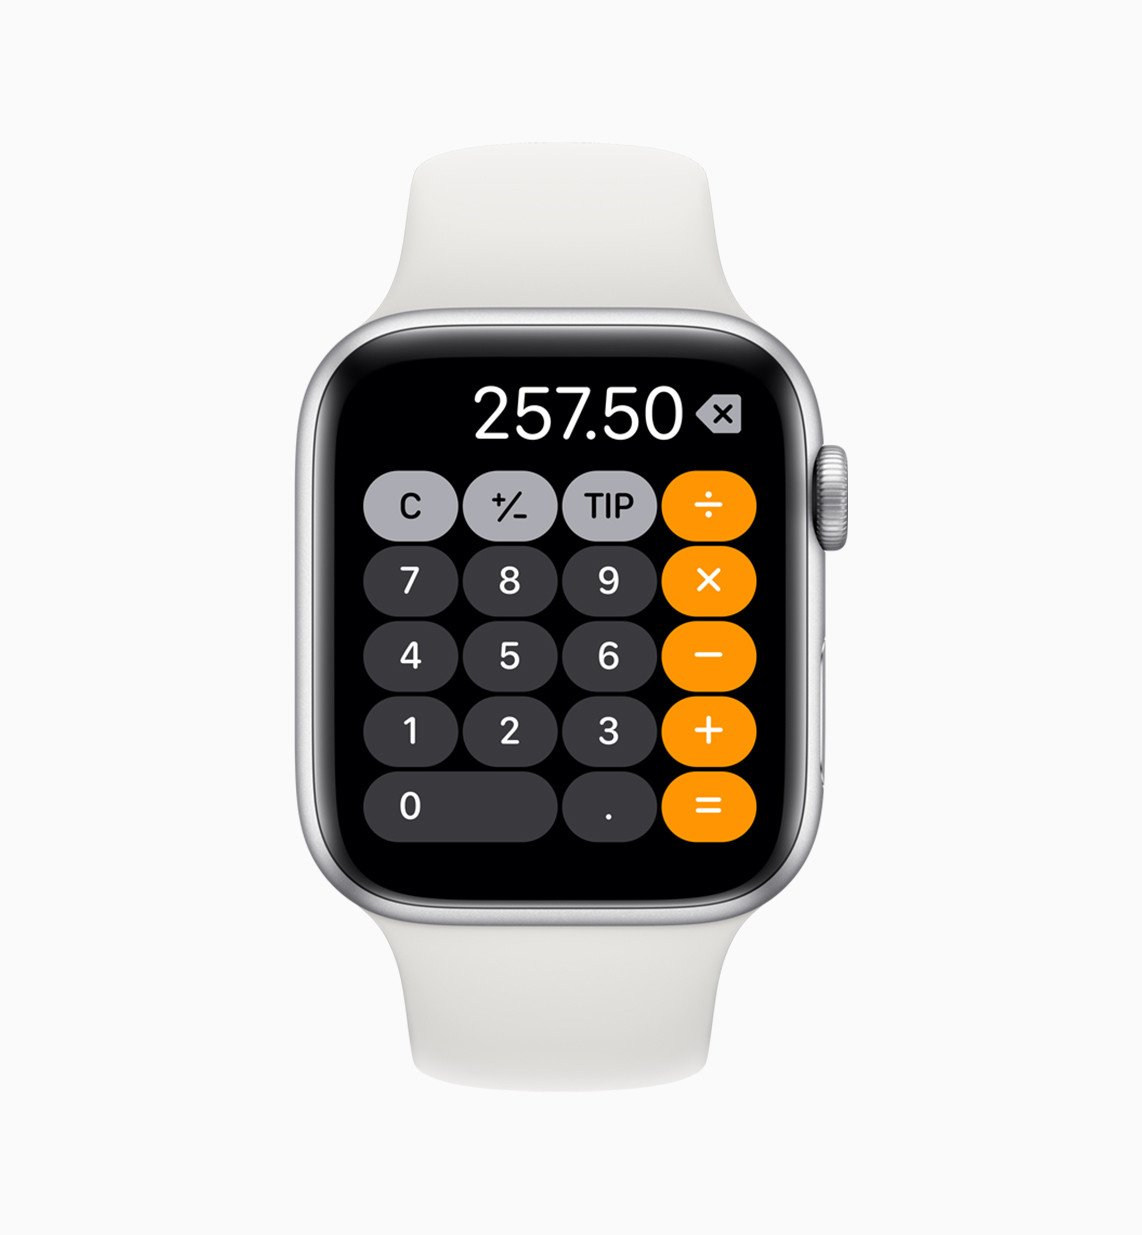 Kalkulačka na Apple Watch